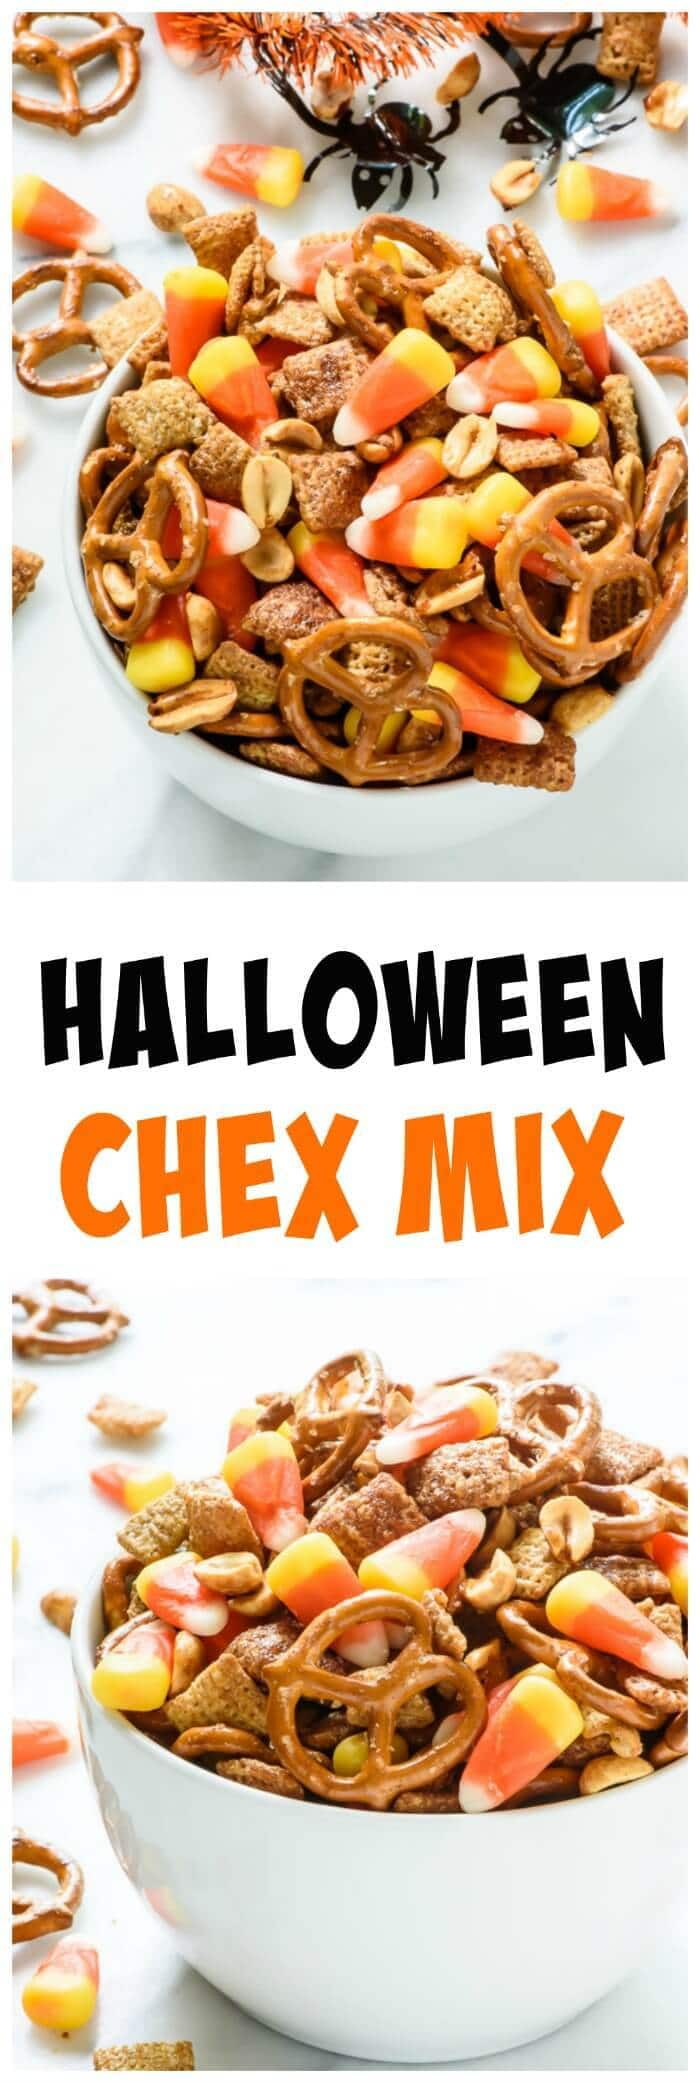 Halloween Chex Mix with Salty Maple Peanuts. Perfect Halloween party food and for trick-or-treat bags!